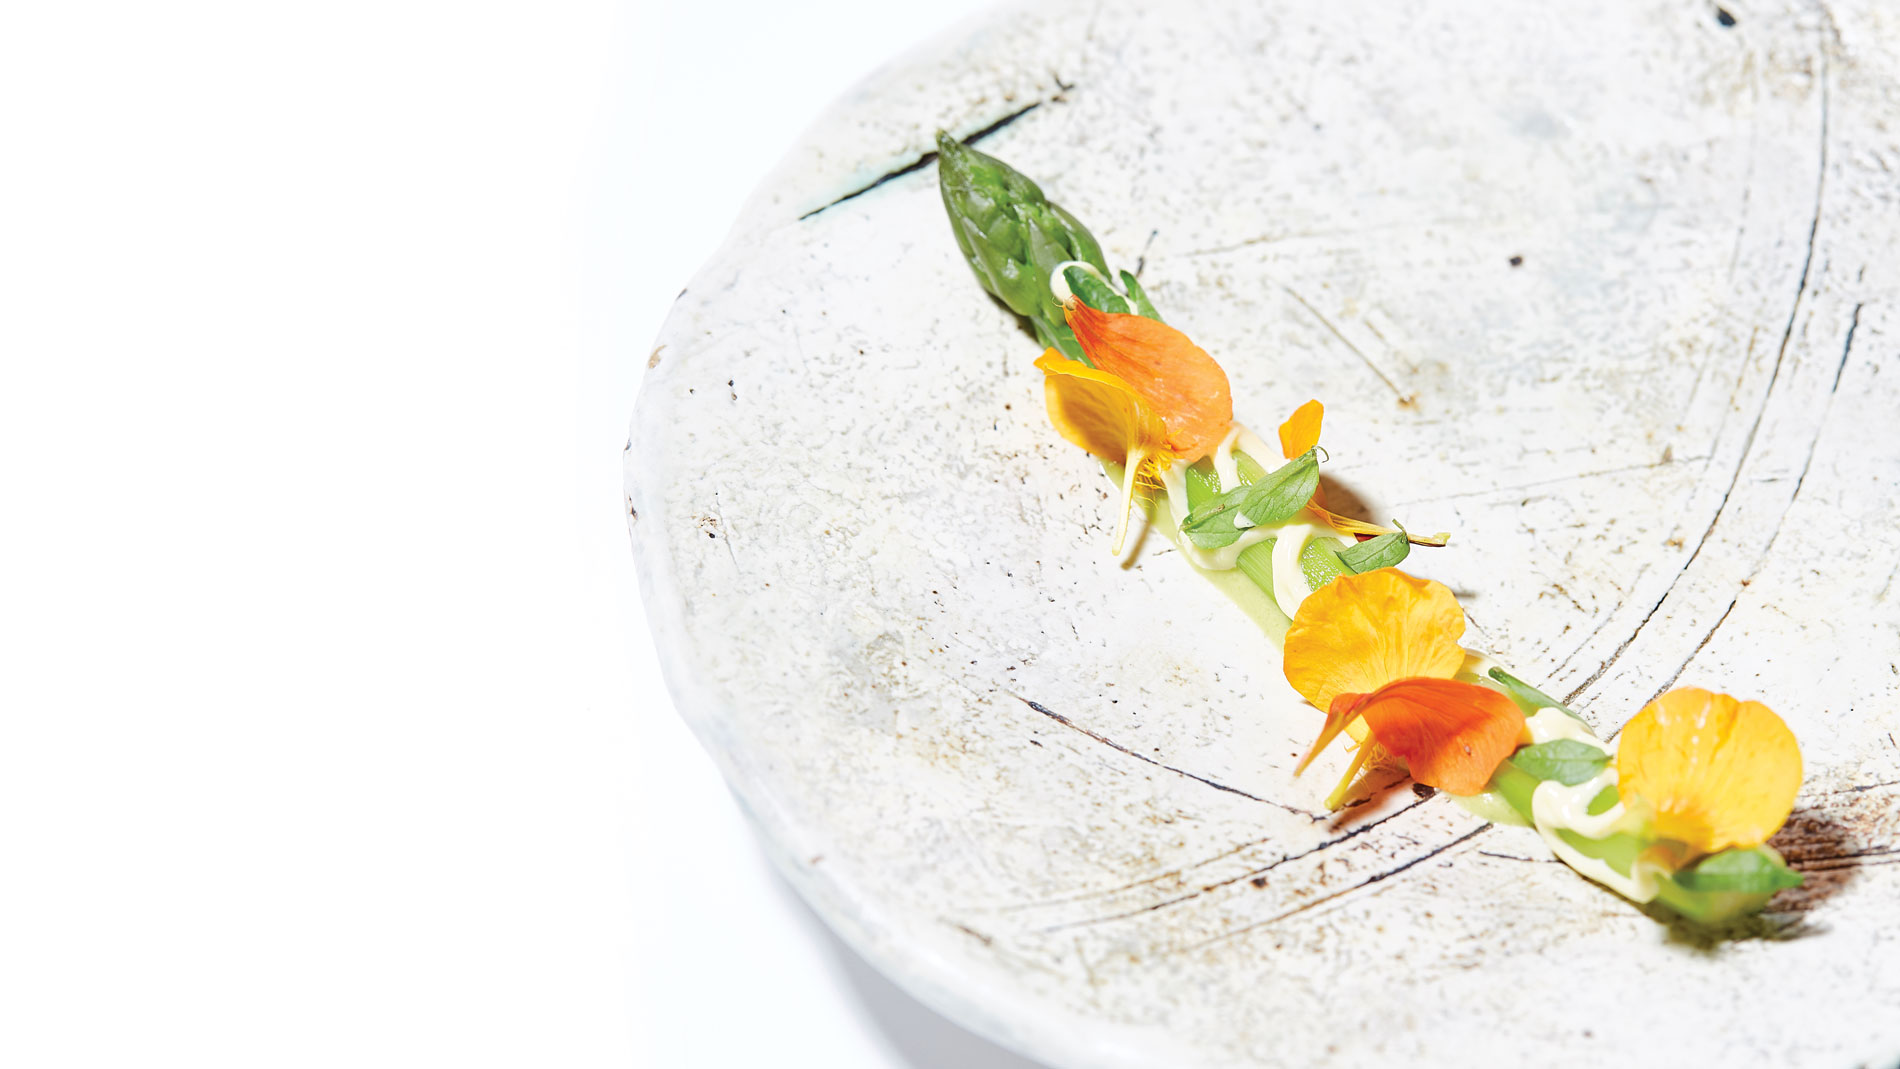 a single piece of asparagus decorated with edible flowers on a white plate